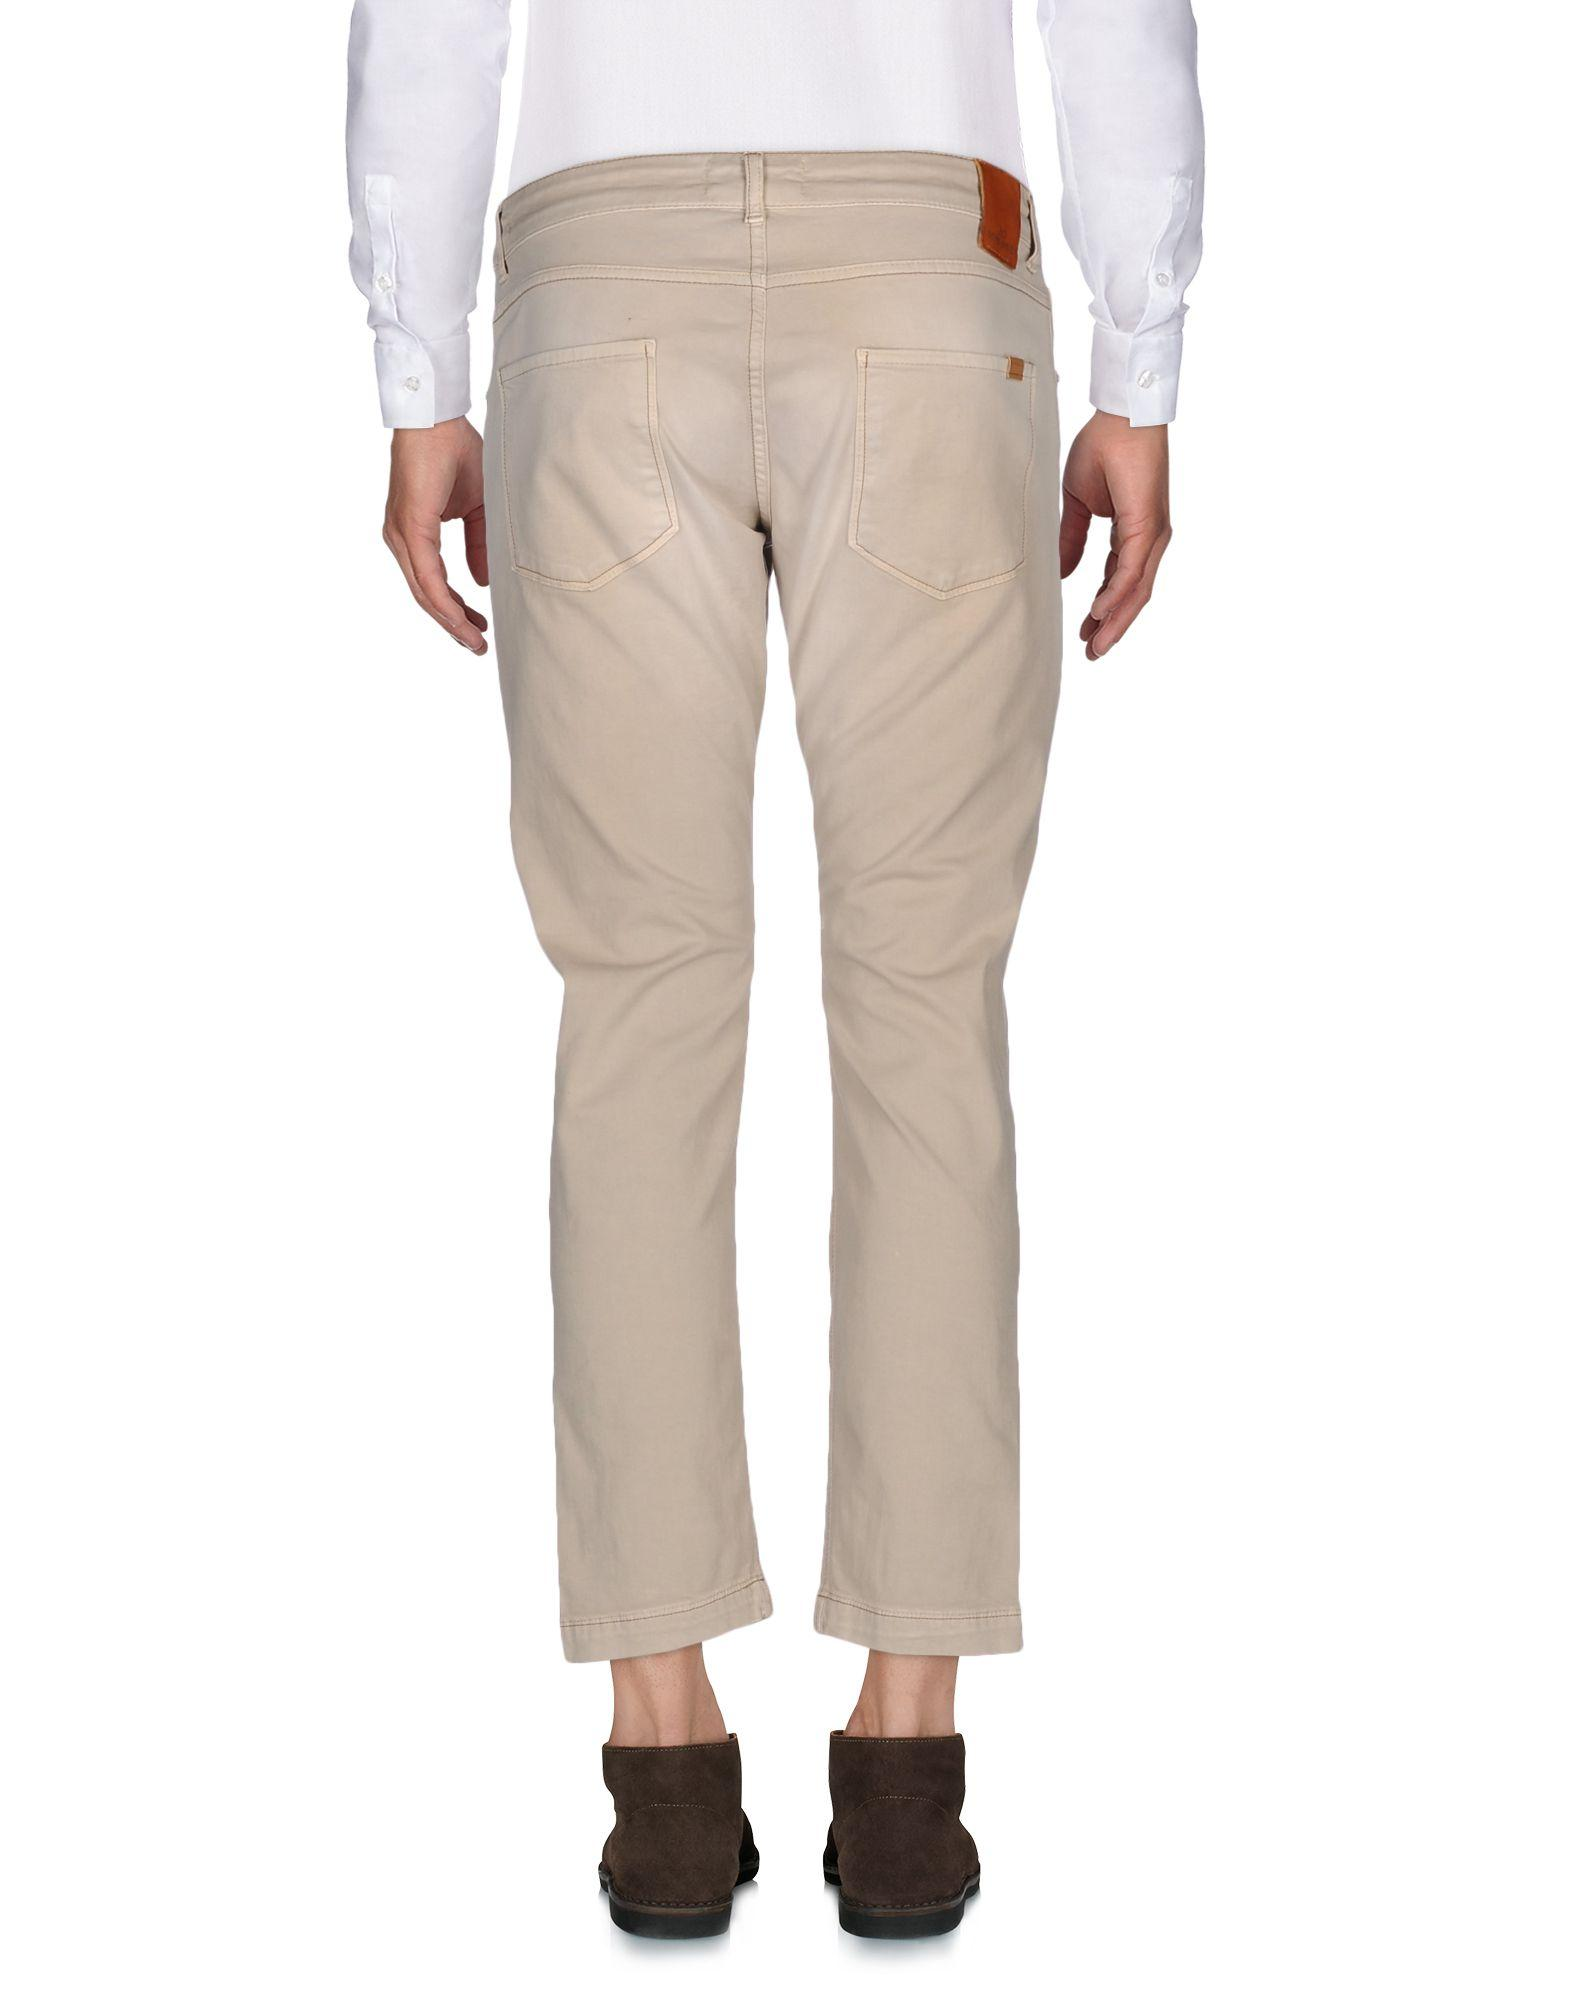 Entre Amis Leather Casual Pants in Beige (Natural) for Men